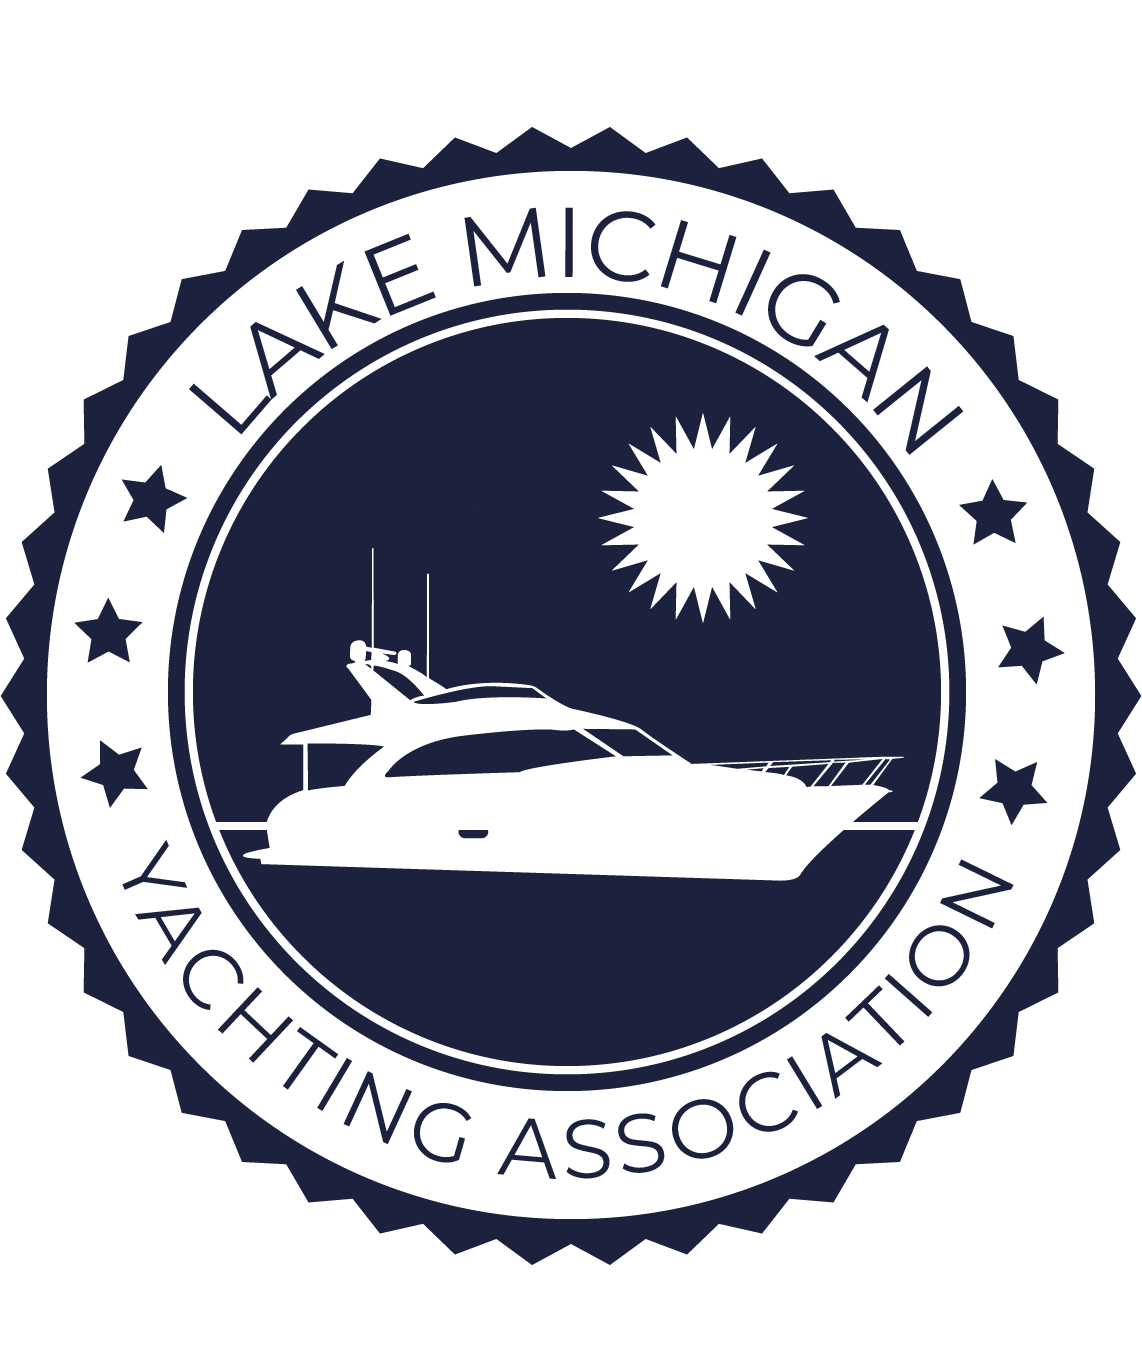 Lake Michigan Yachting Association